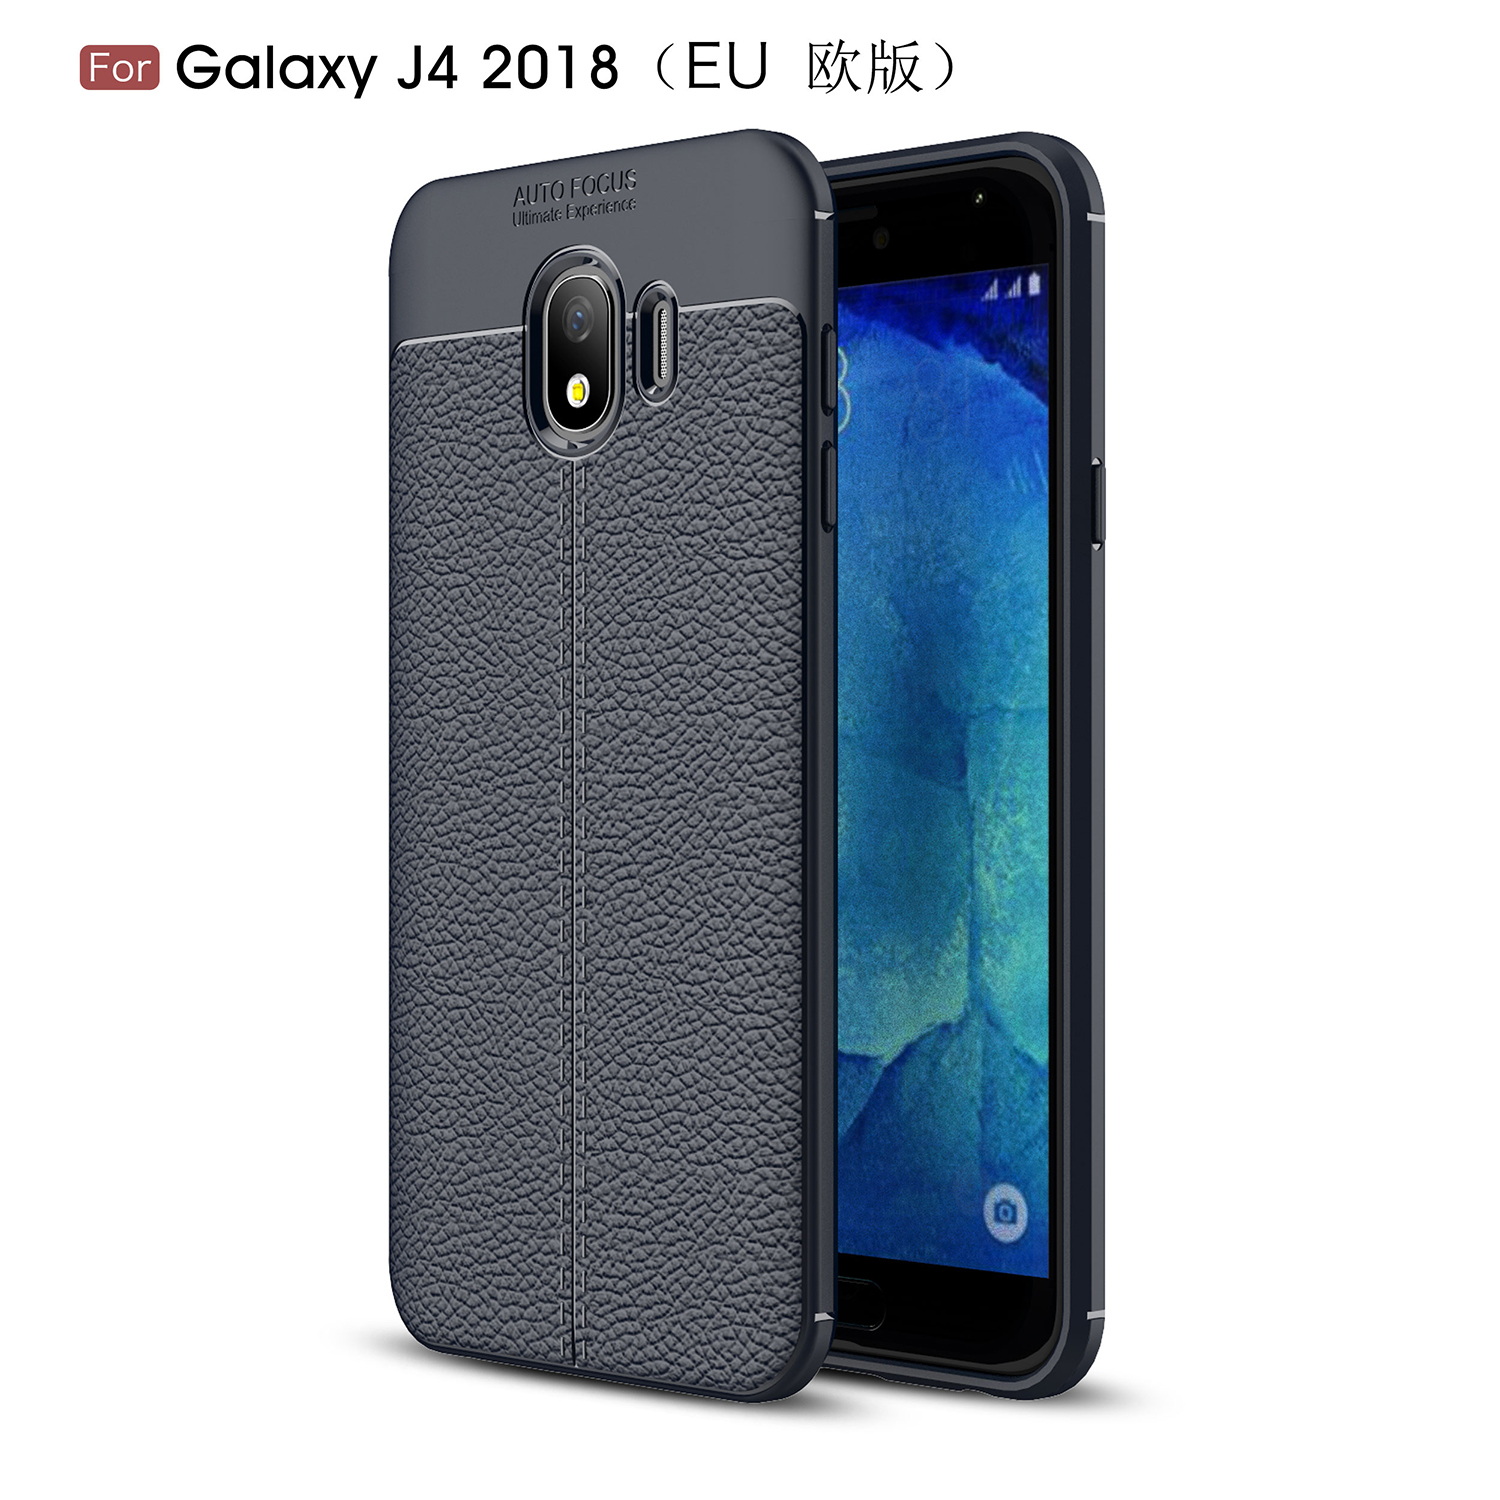 Aliexpress Buy sFor Phone Case Samsung Galaxy J4 2018 Cover Litchi Pattern Case Soft Silicone Case for Samsung Galaxy J4 2018 J400F Cover Capa from